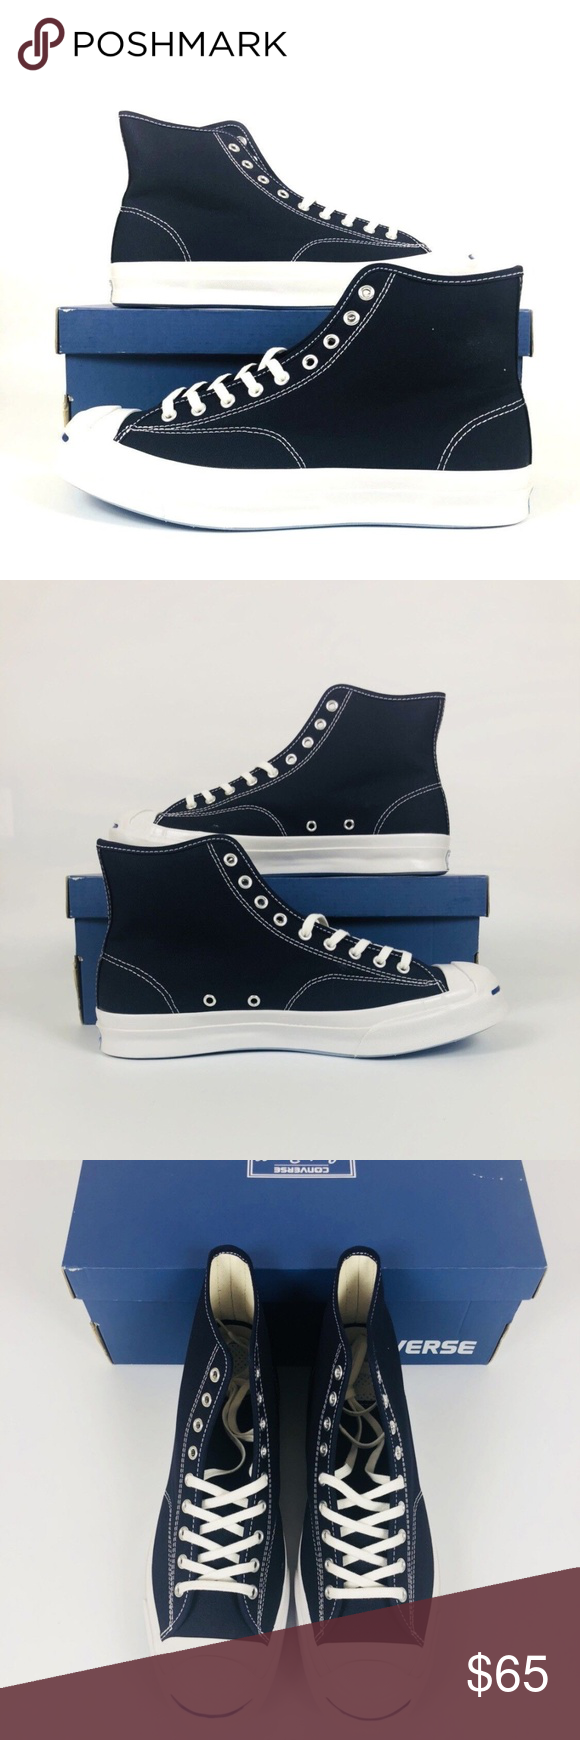 9148c034132f Converse Jack Purcell JP Signature Converse Jack Purcell JP Signature Hi  Mens 11 Shoes Sneaker Inked Blue 153592C New With Box Shipped Double Boxed  Converse ...